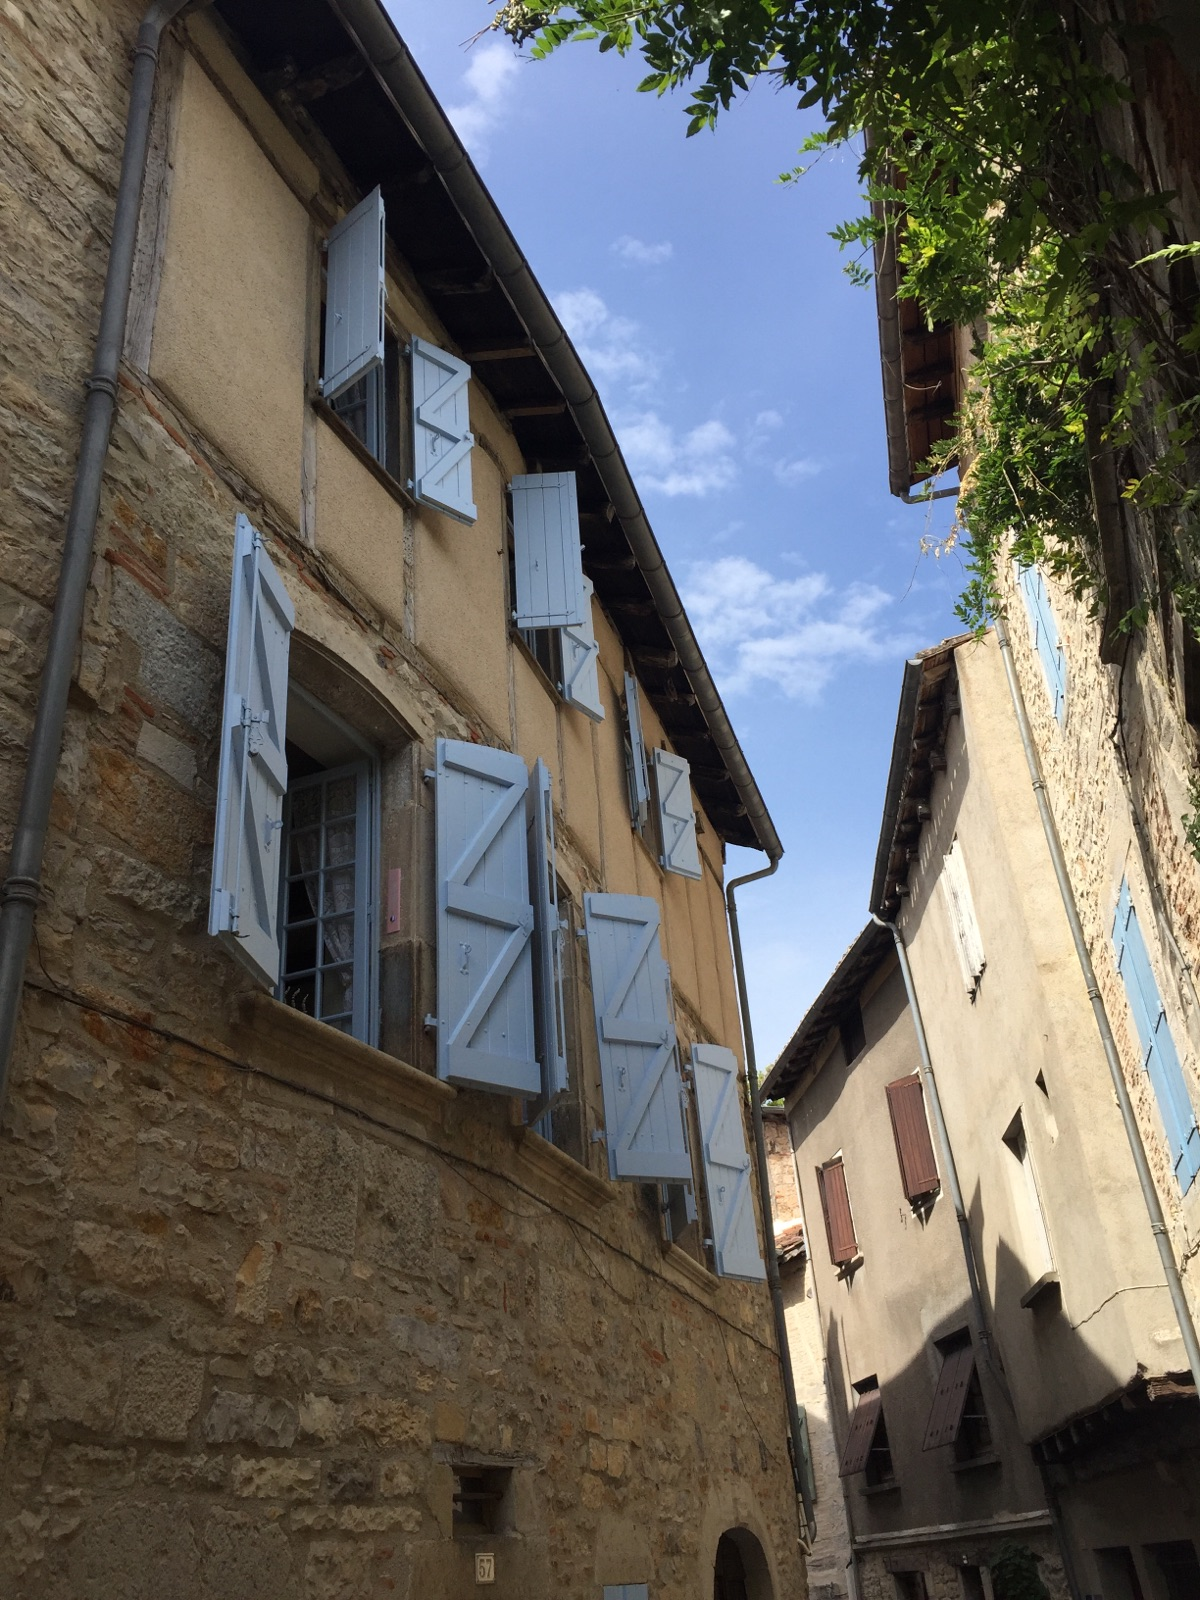 Incredible group trip to the French countryside: antiquing, wine tasting, historical tours. chateausonoma.com